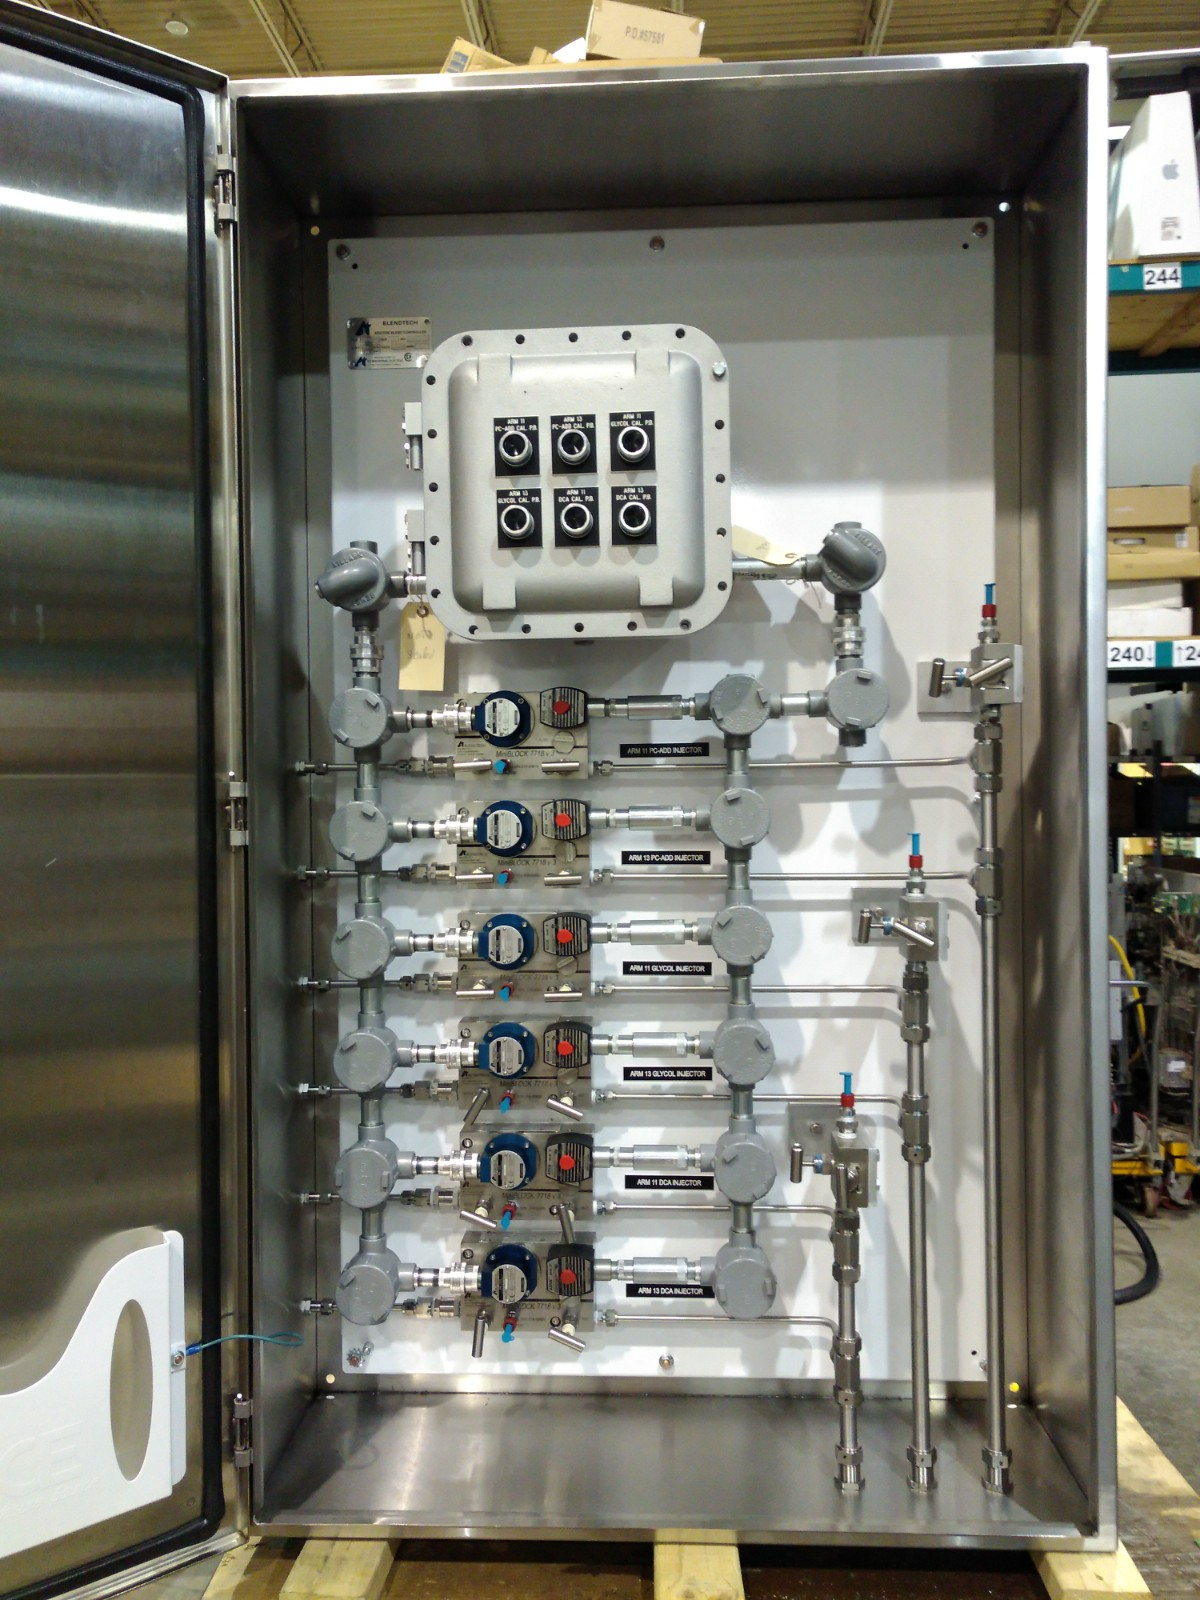 6 Injector Cabinet Front View